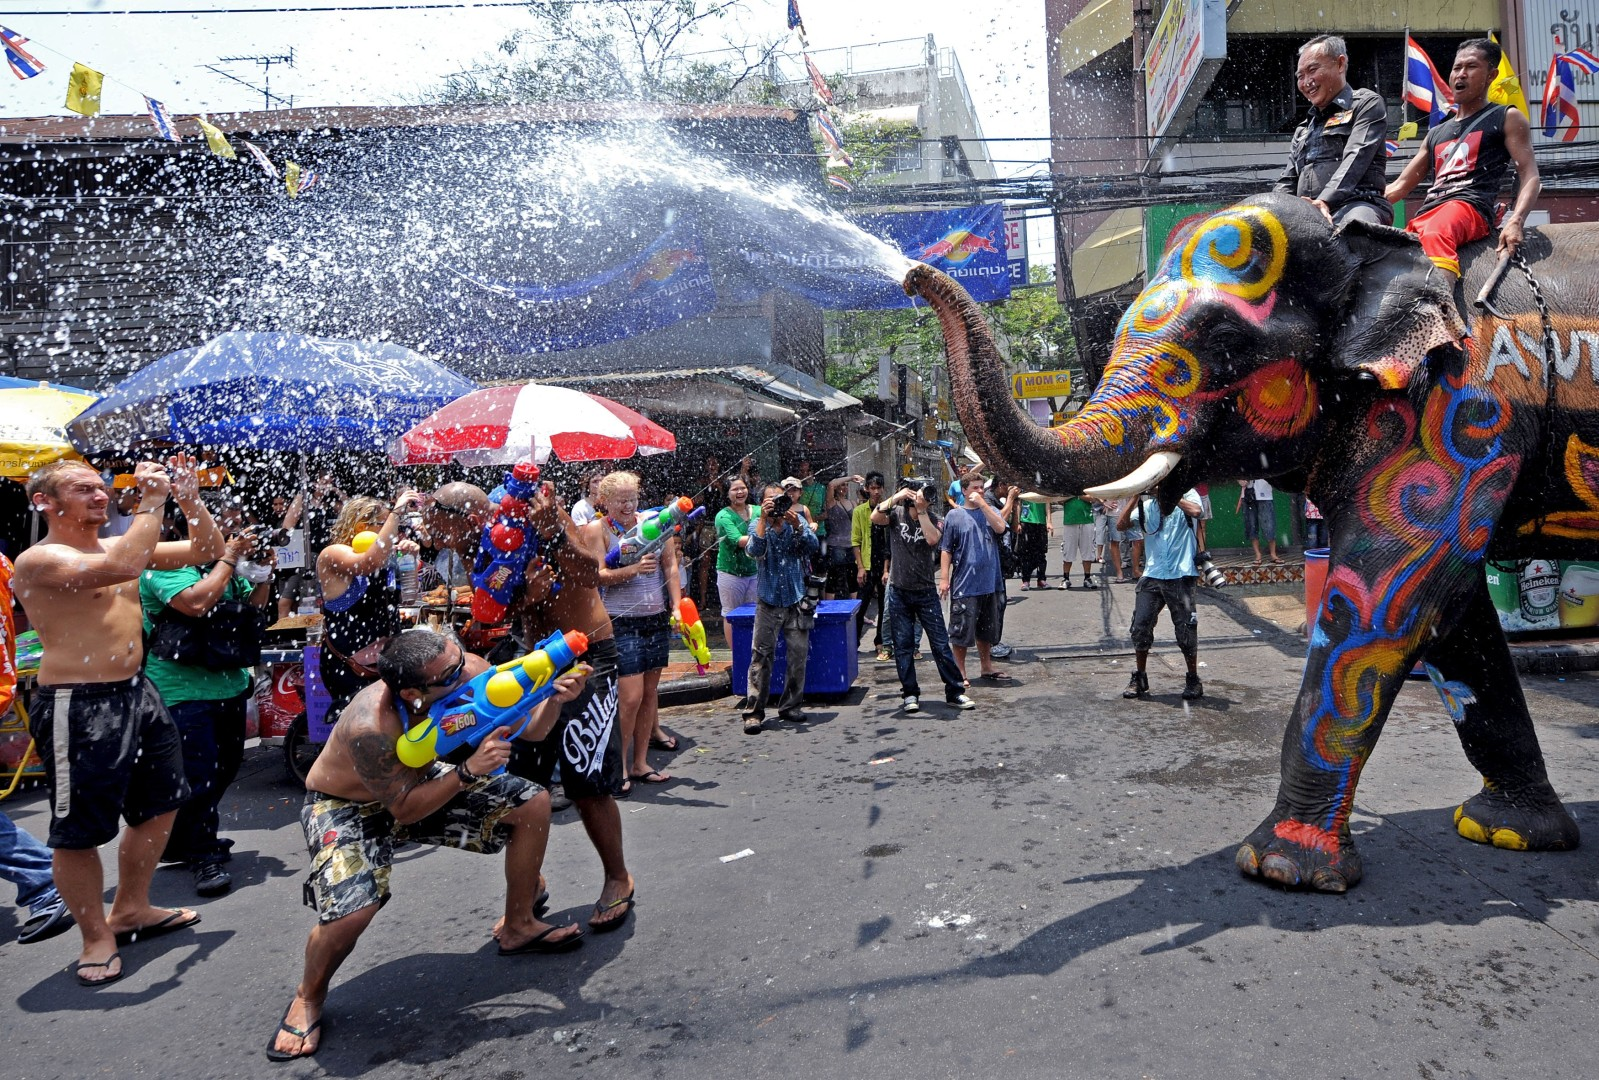 Songkran, everything you need to know about Thailand's famous new year water  fight | South China Morning Post